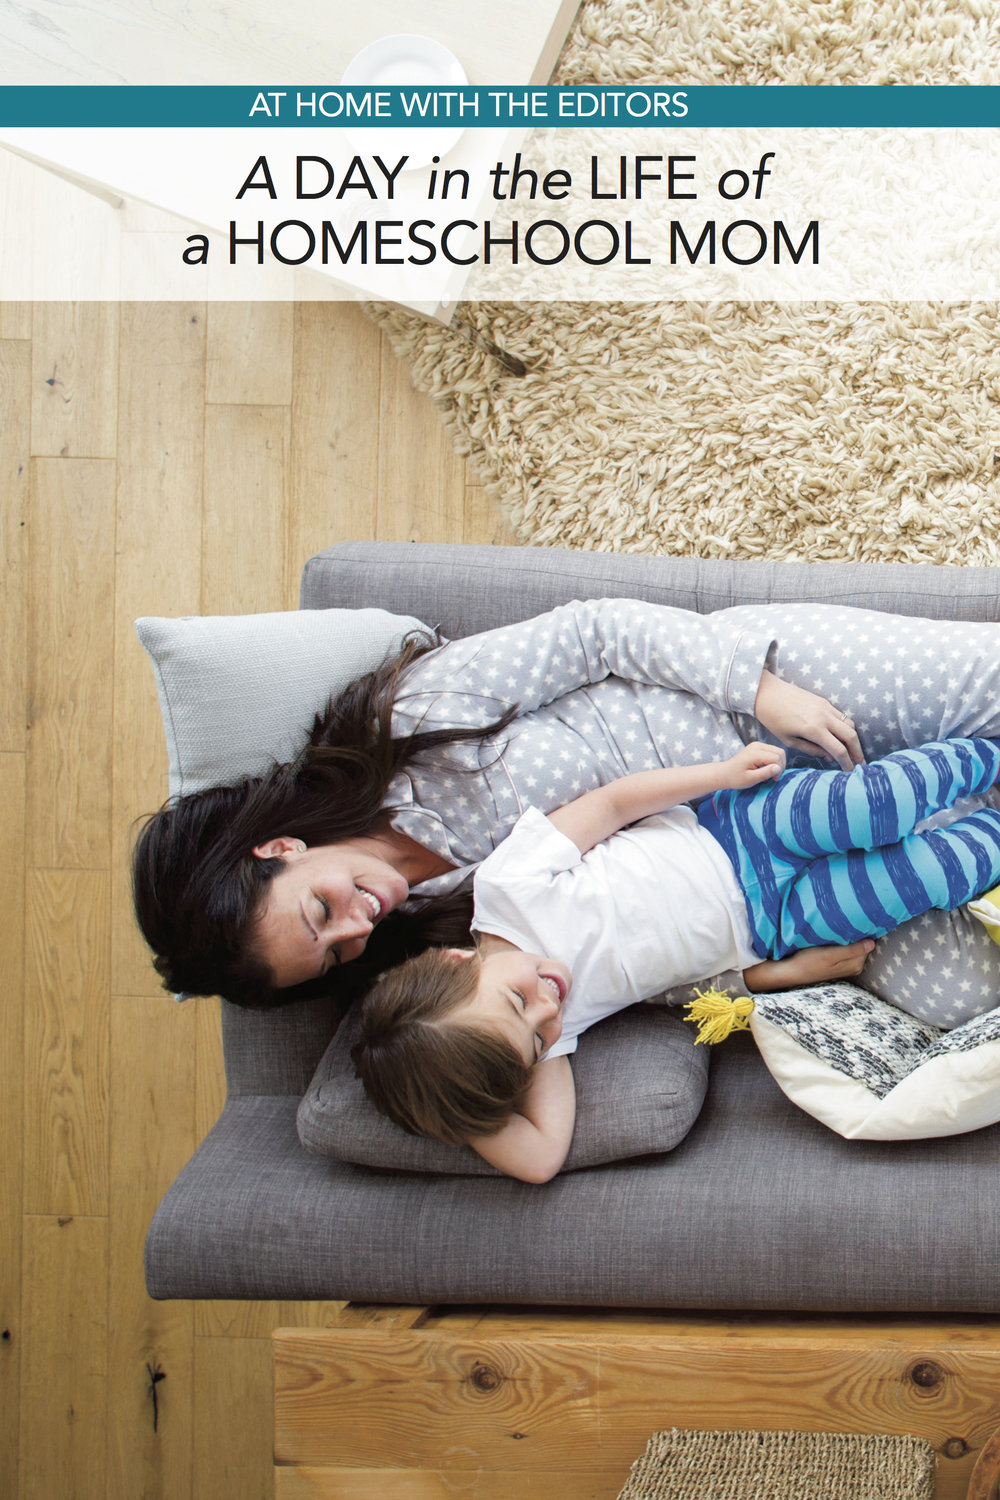 At Home with the Editors: A Day in the Life of a Homeschool Mom